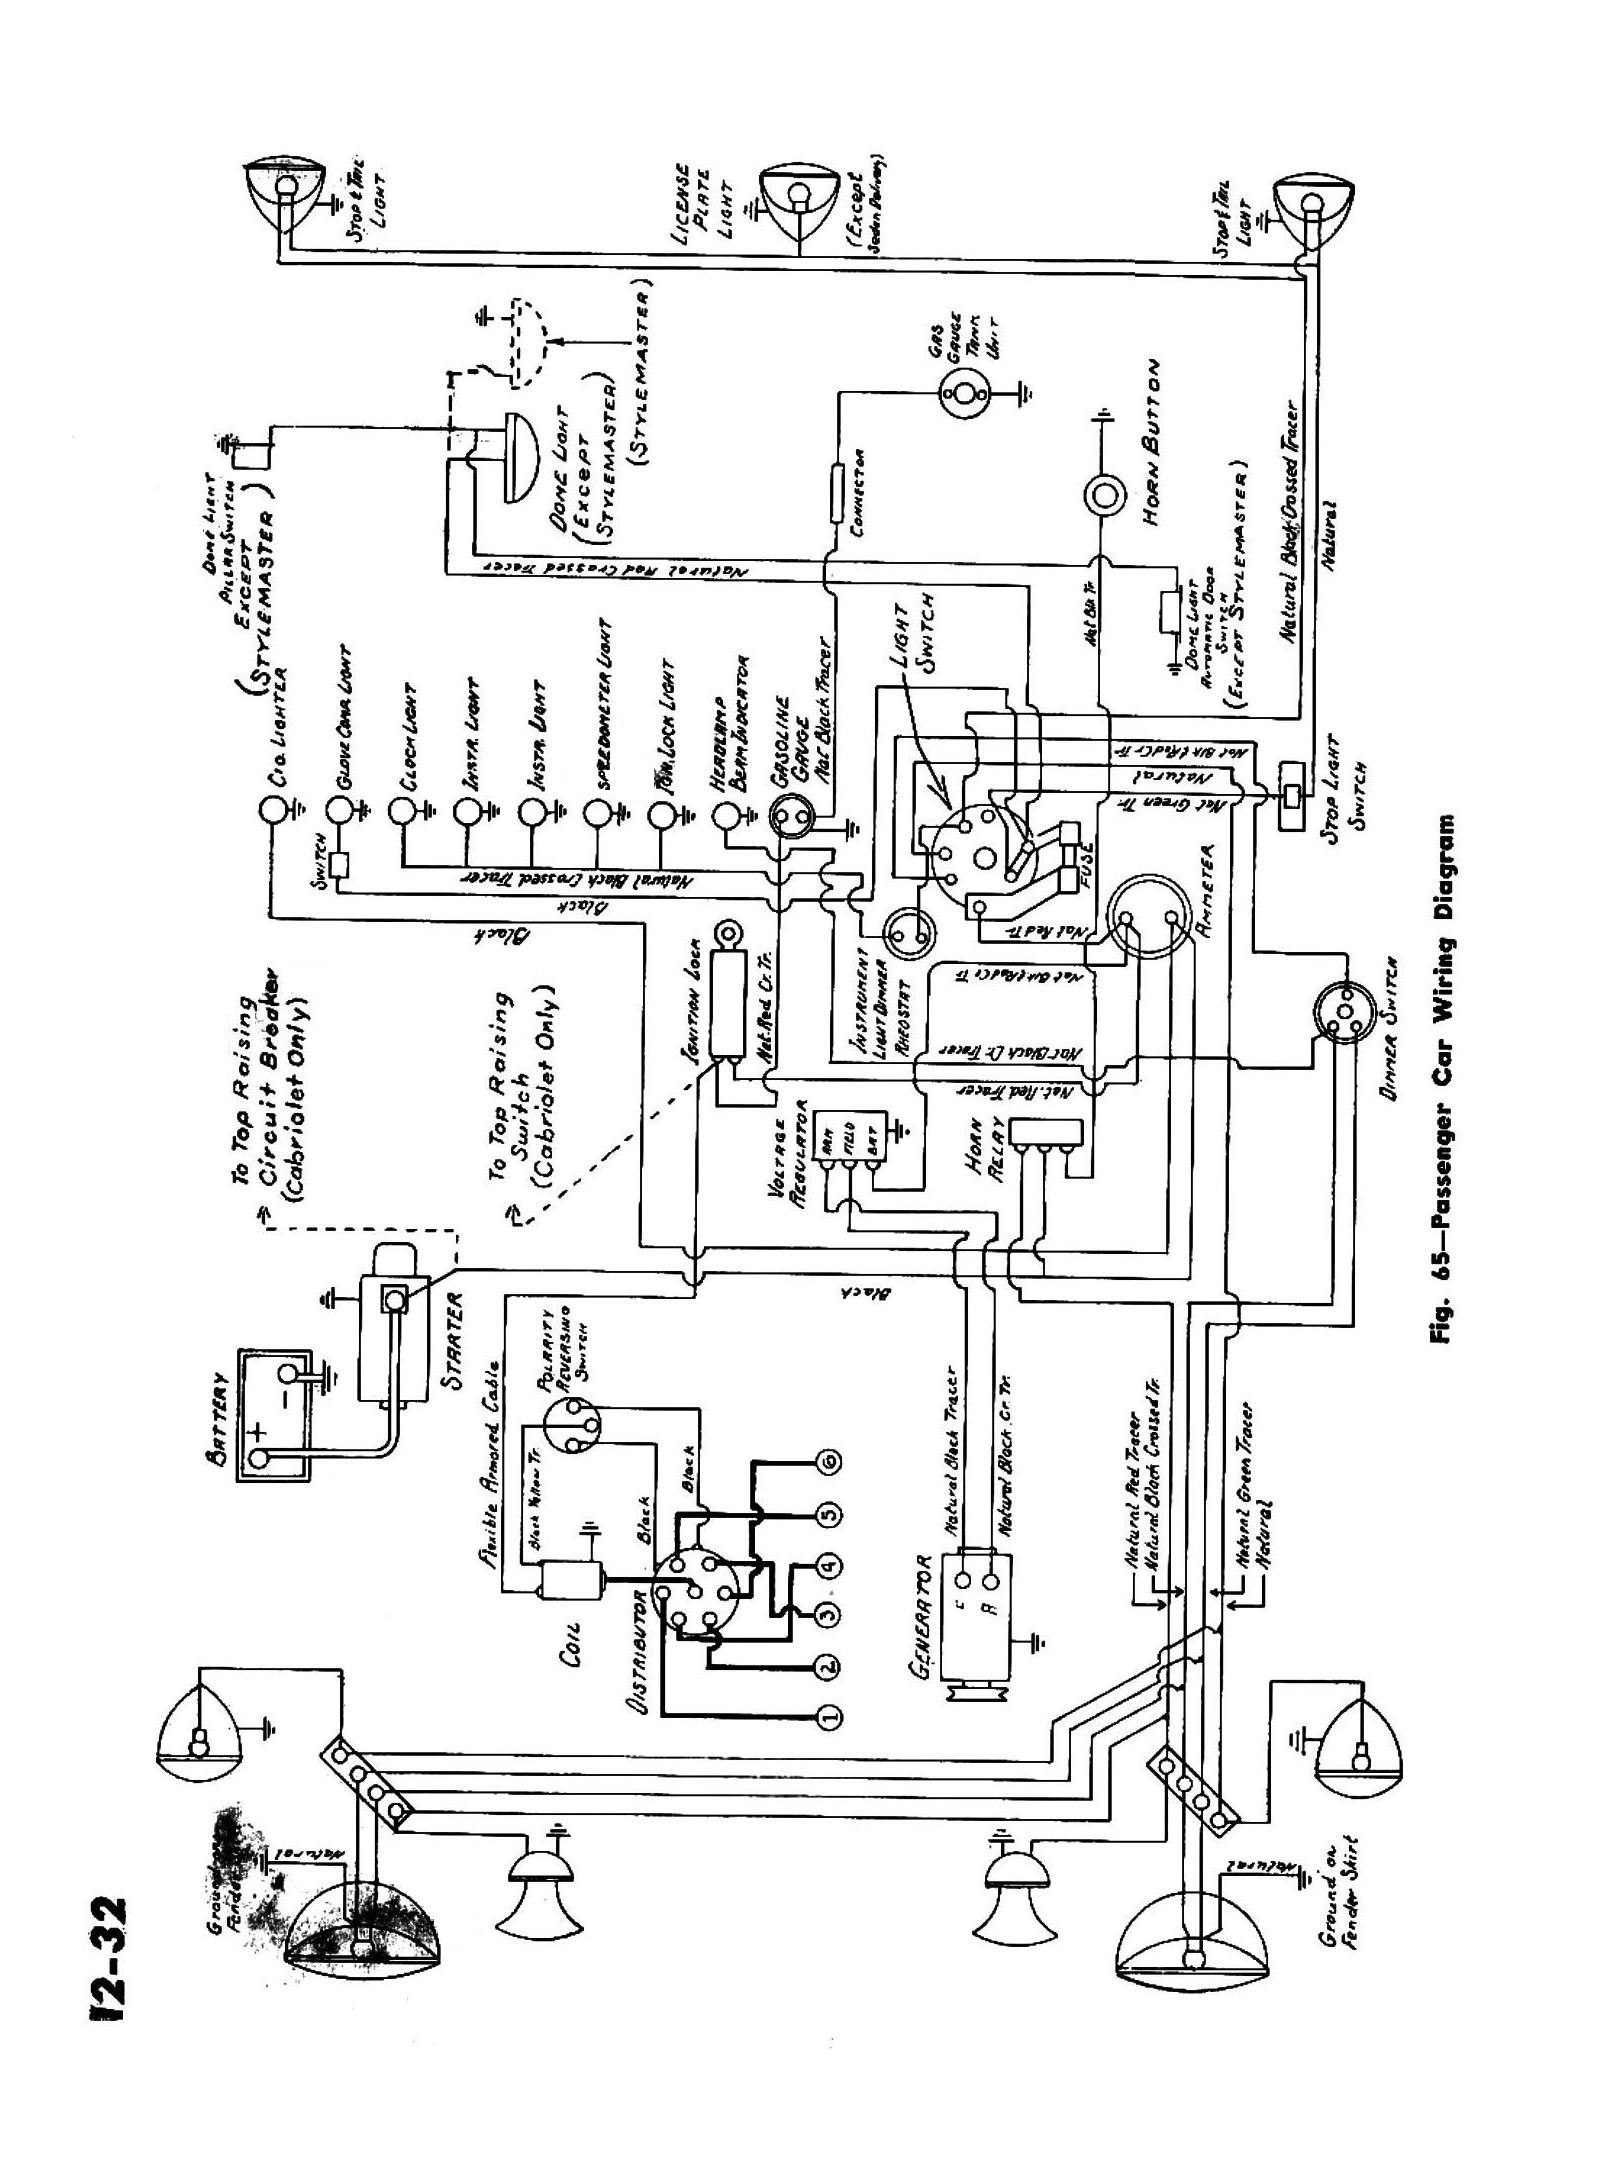 old fuse box diagram with Wiring Diagram For 1986 Chevy Truck on Viewtopic furthermore 2009 Chrysler Starter Location additionally Weber Carburetor Diagram together with Showthread additionally 371333 1997 Trailer Running Parking Lights Not Working.